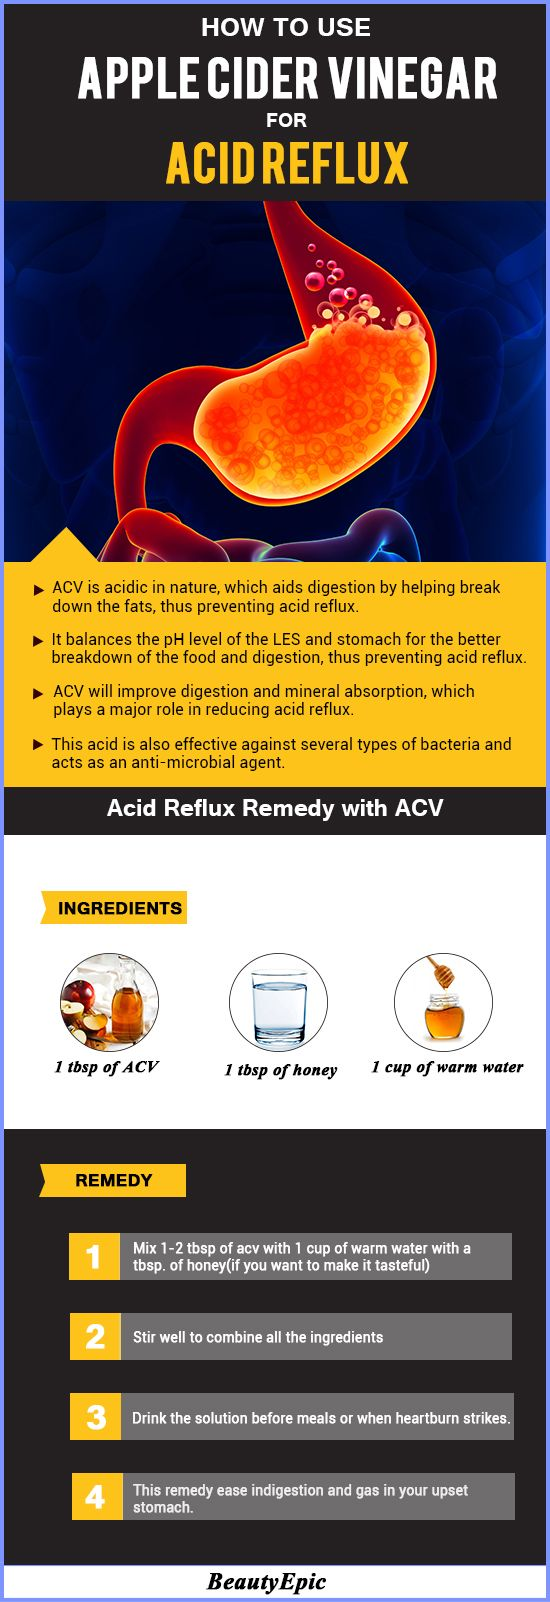 7 Effective Ways to Use Apple Cider Vinegar for Acid Reflux That Give Fast Relief!